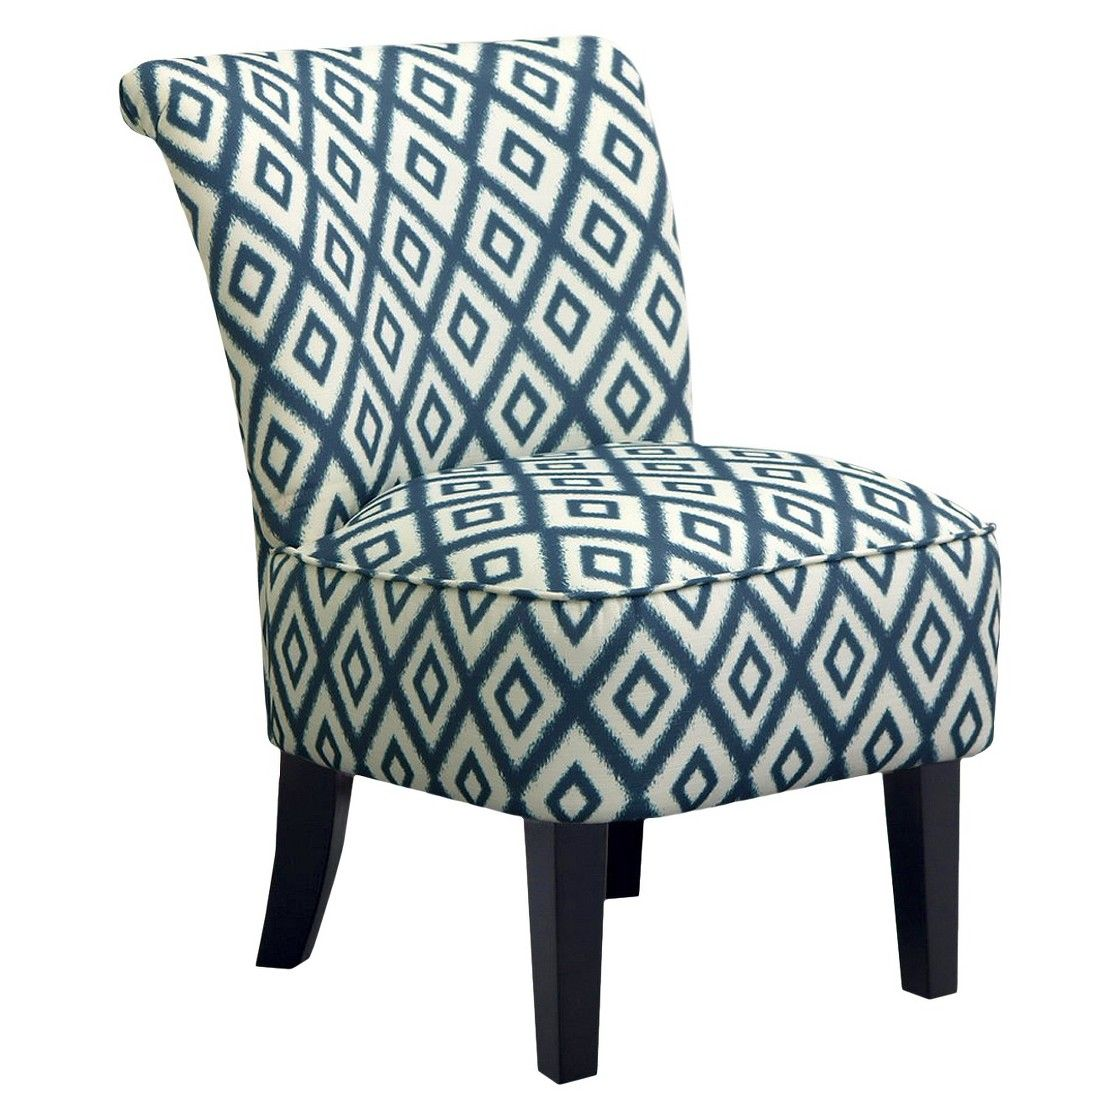 Threshold� Rounded Back Chair - Ikat Blue